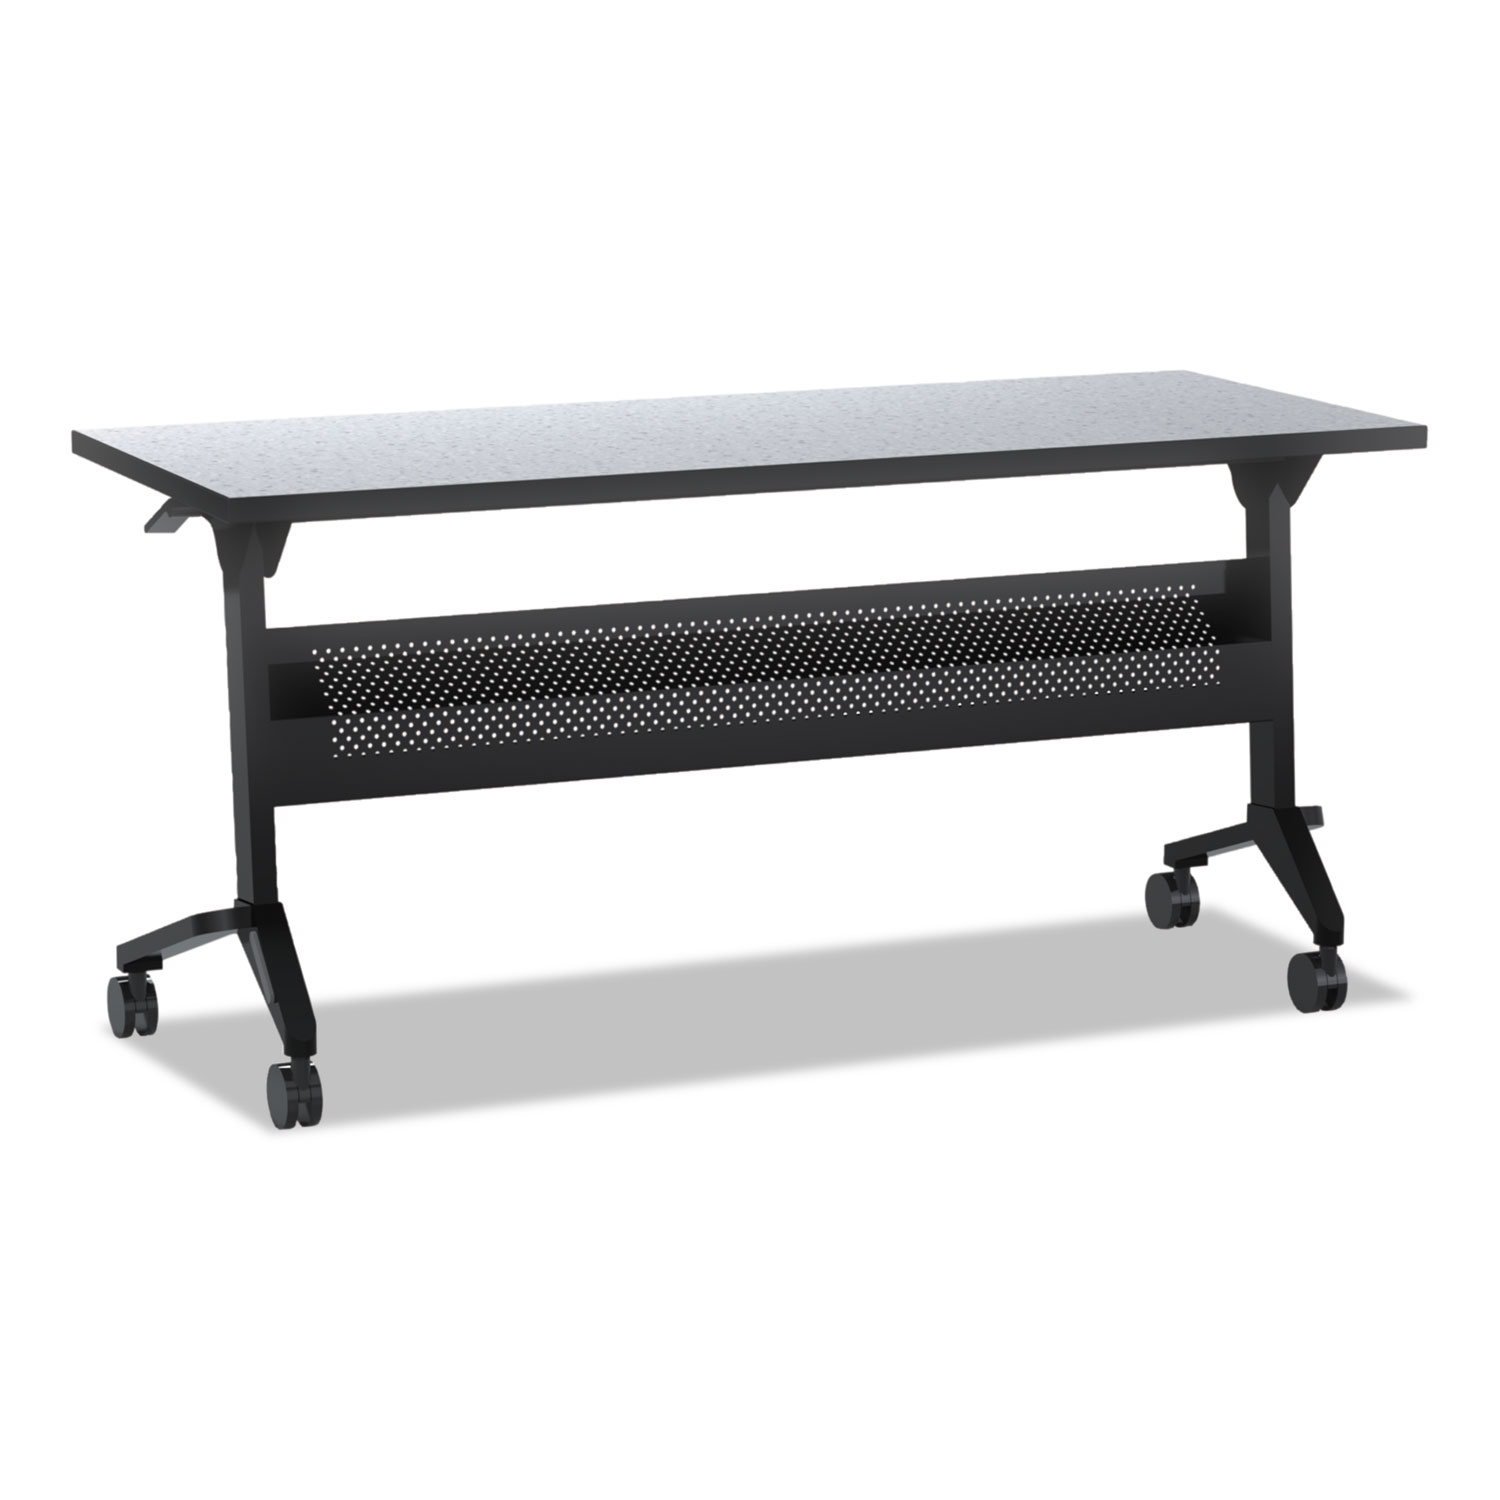 Flip-n-Go Table Top, 72w x 18d, Folkstone